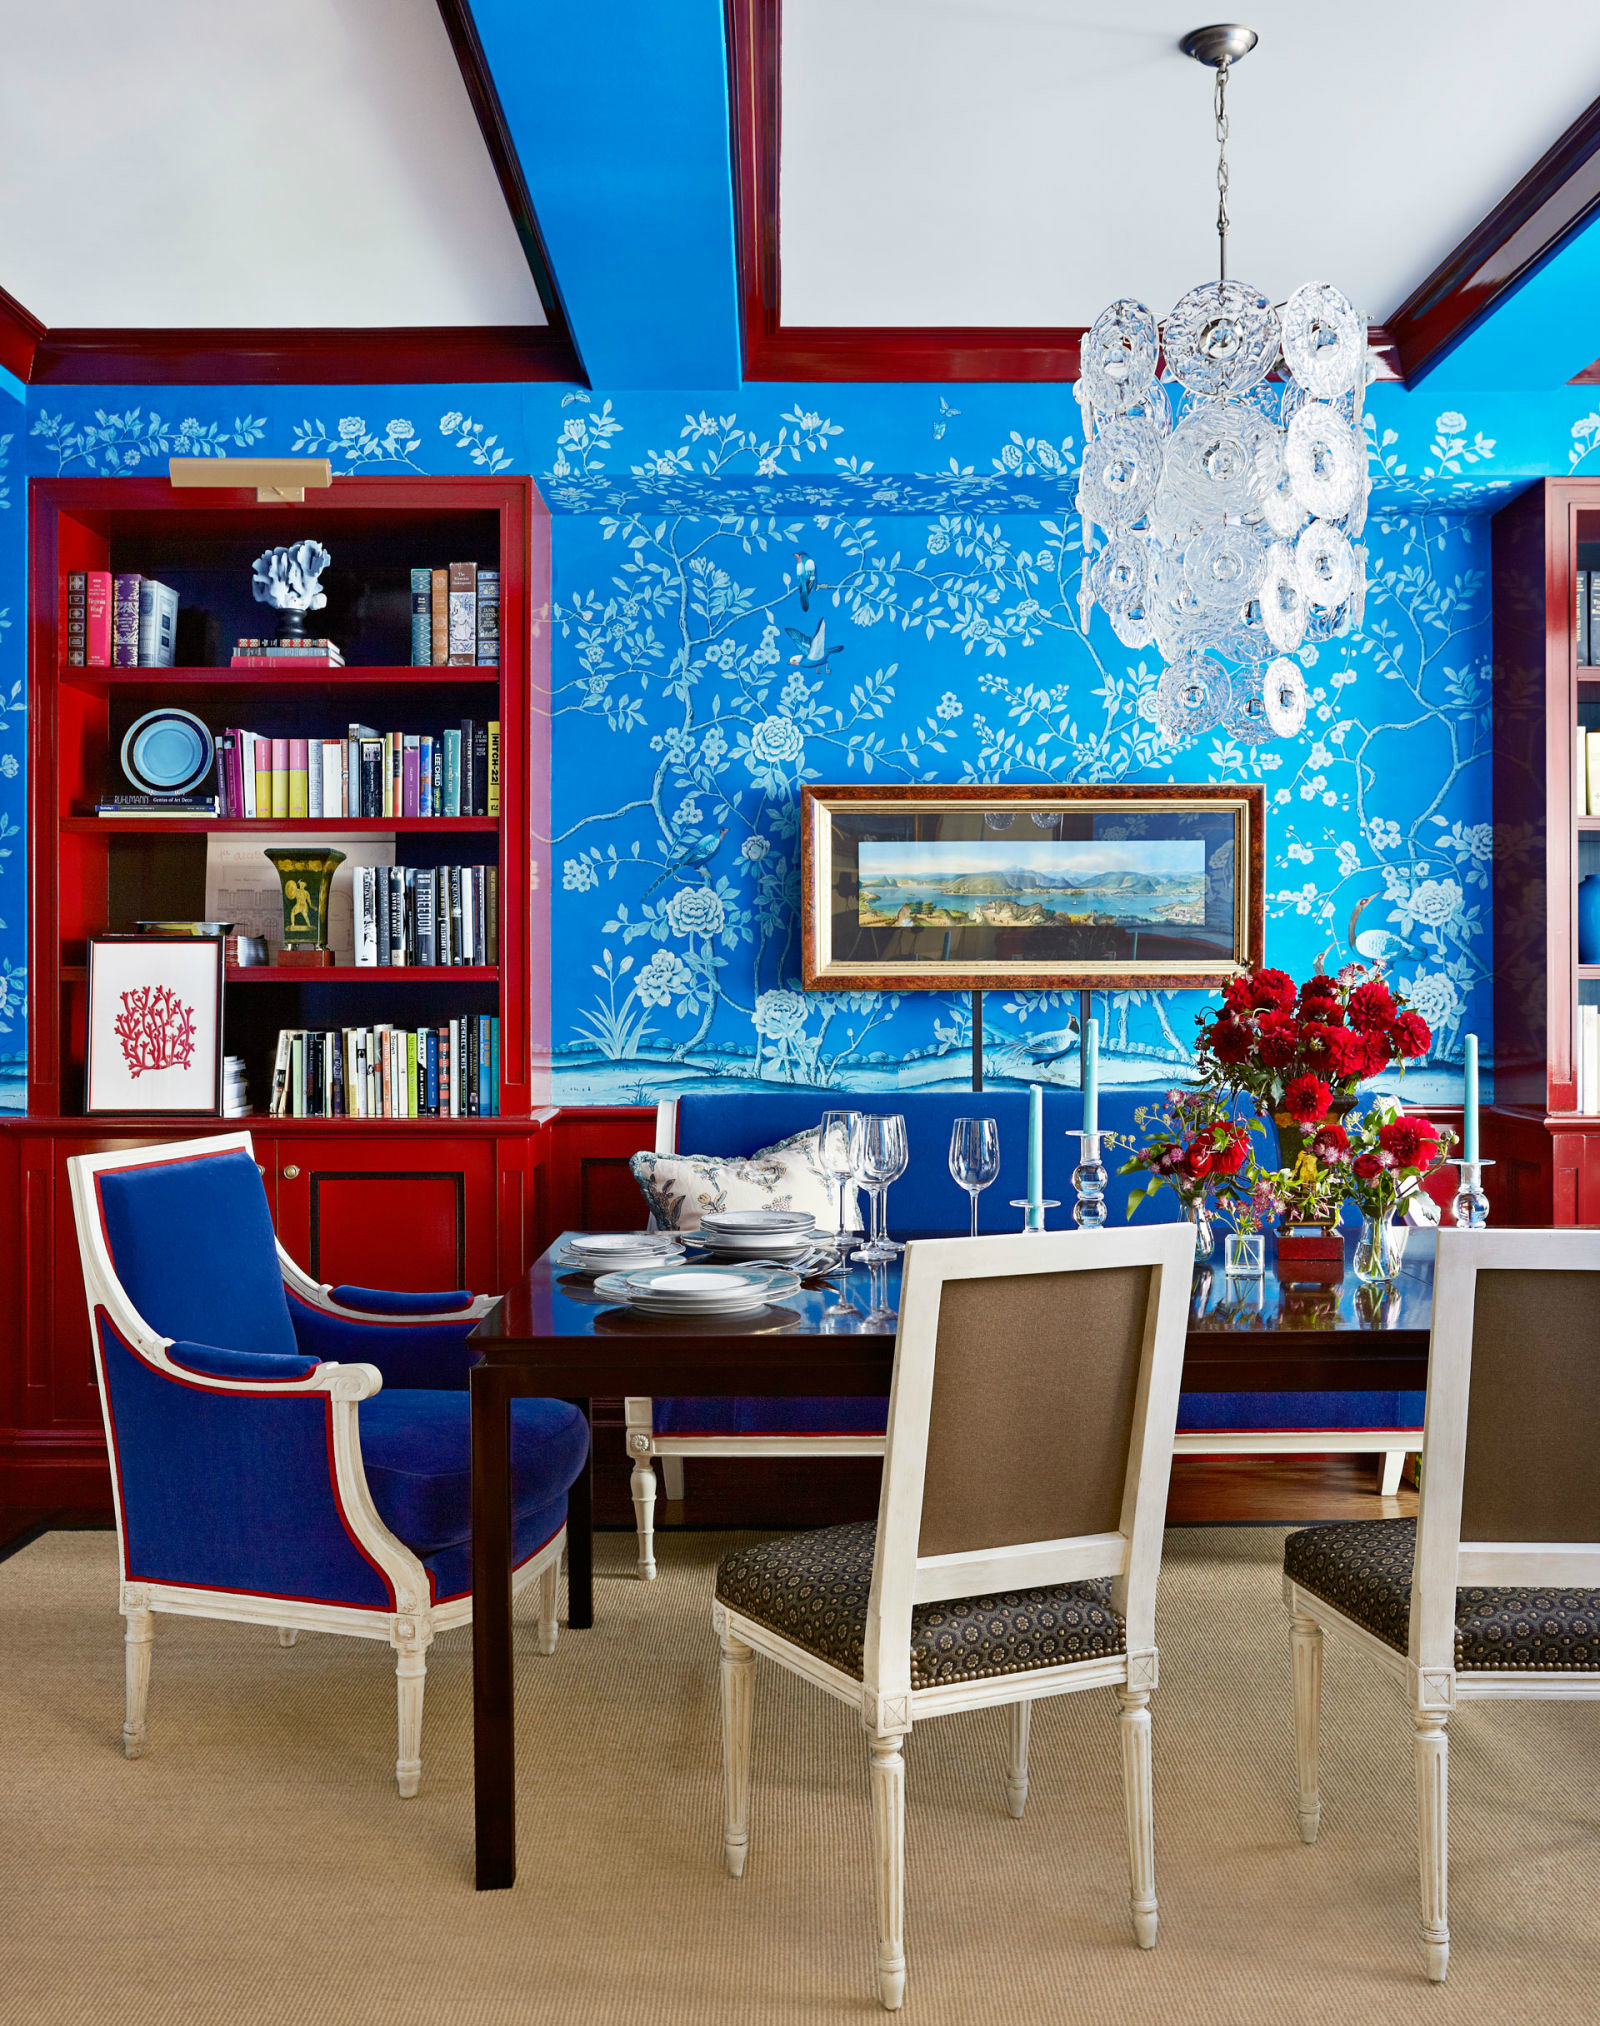 10 Chic Ways to Decorate in Red, White and Blue dining room